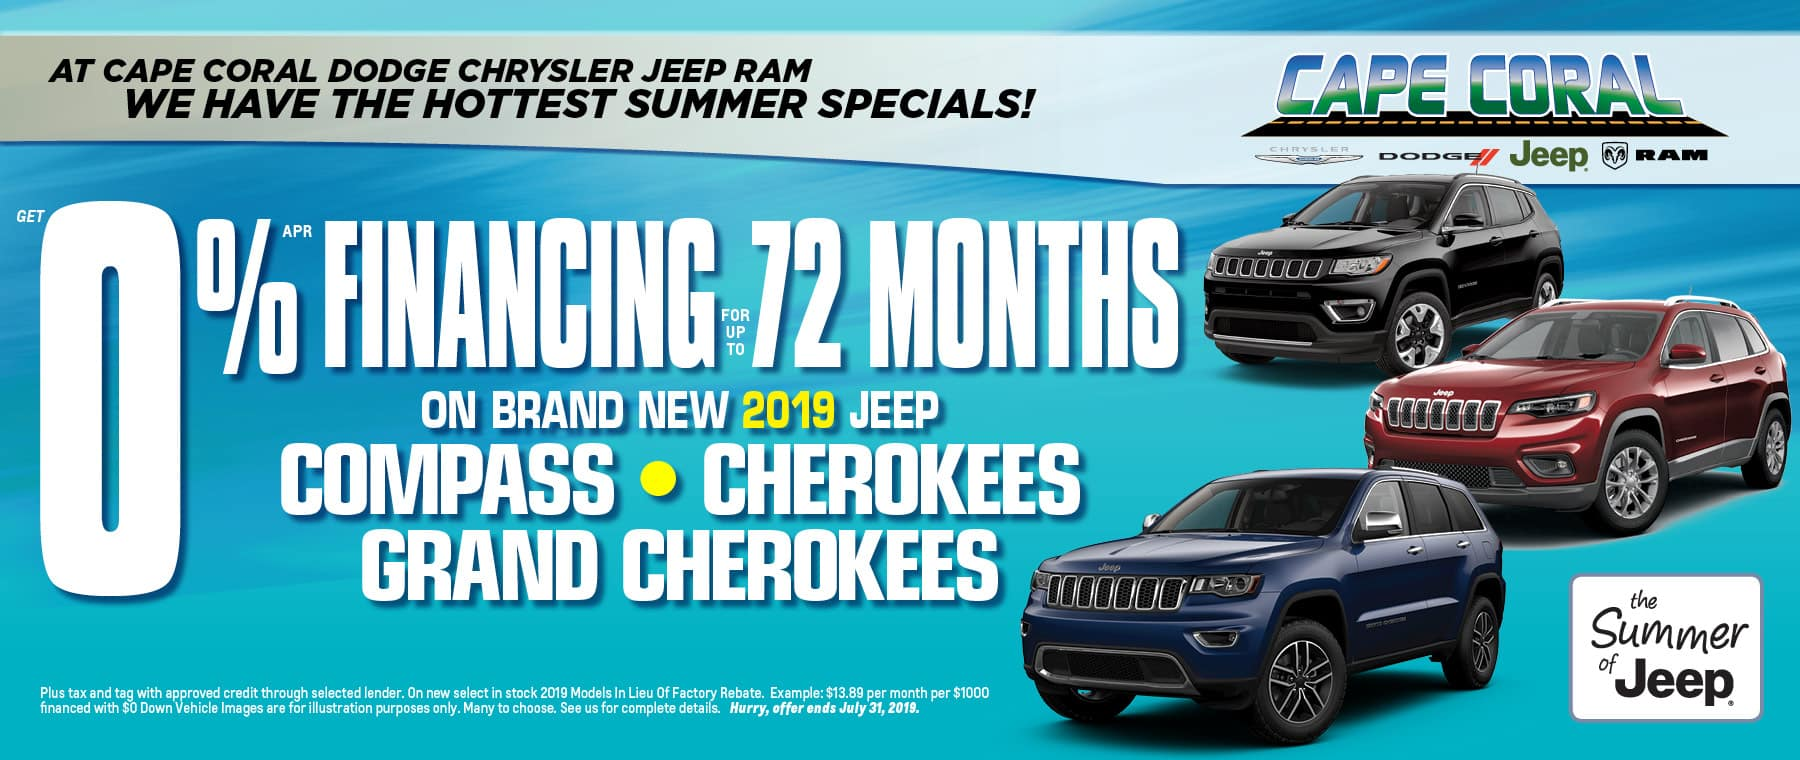 Just Announced! 72% Financing Available On Jeep Cherokees, Grand Cherokees & Compass!